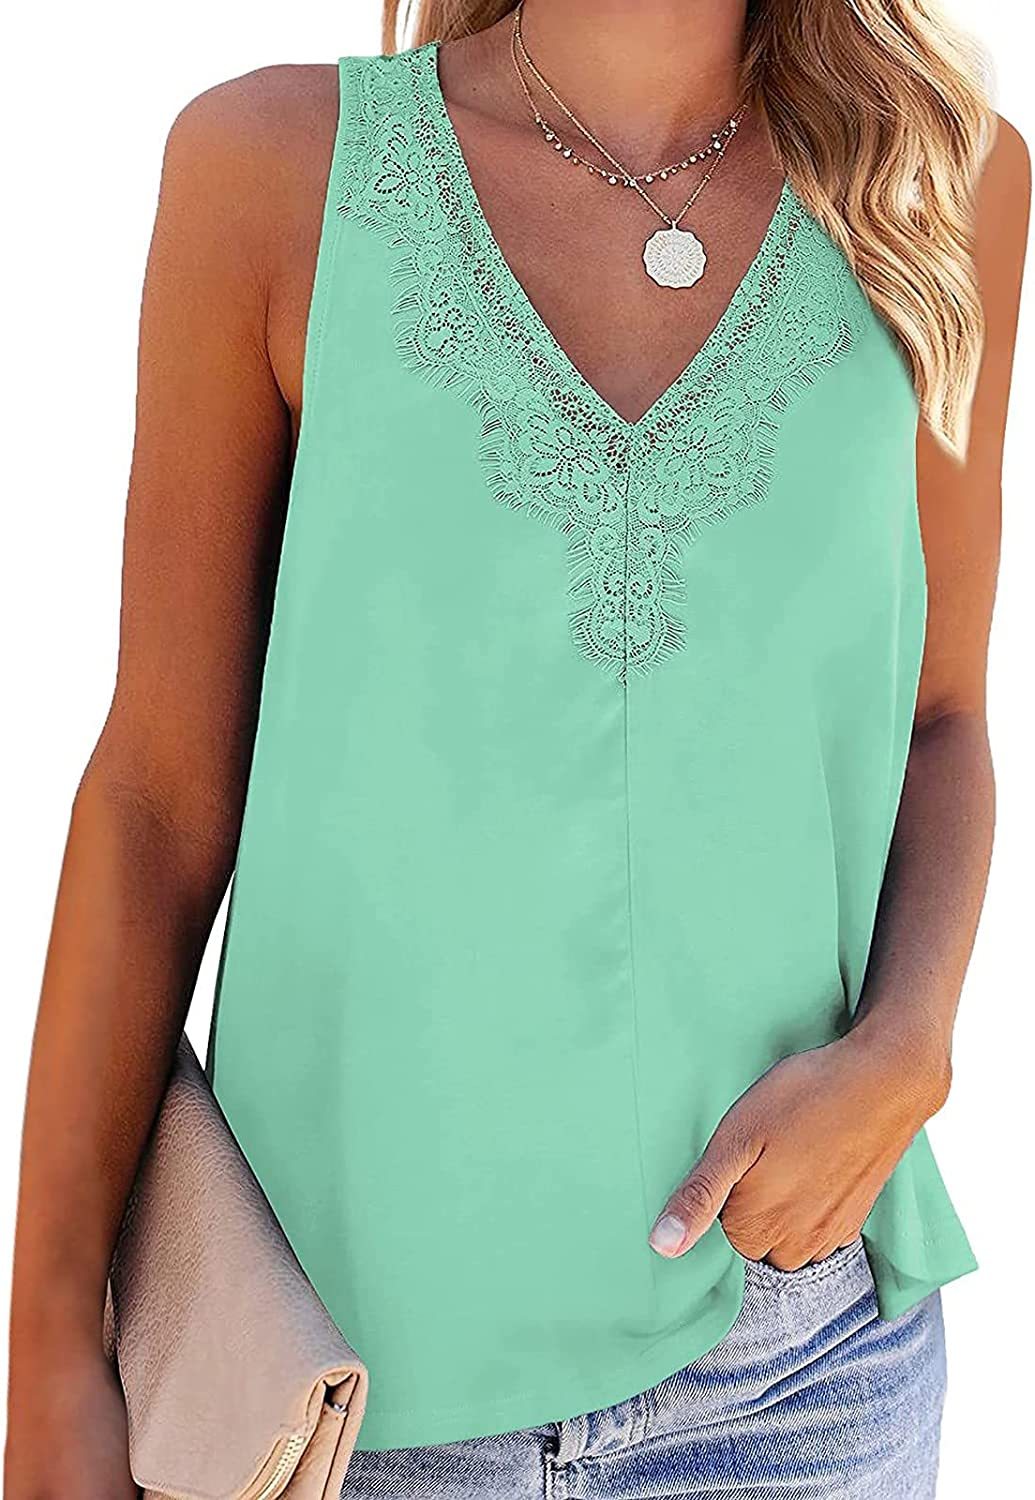 Womens Tops Summer Sexy,Womens Tank Tops Summer Loose Fit Color Block Casual Sleeveless Tshirts